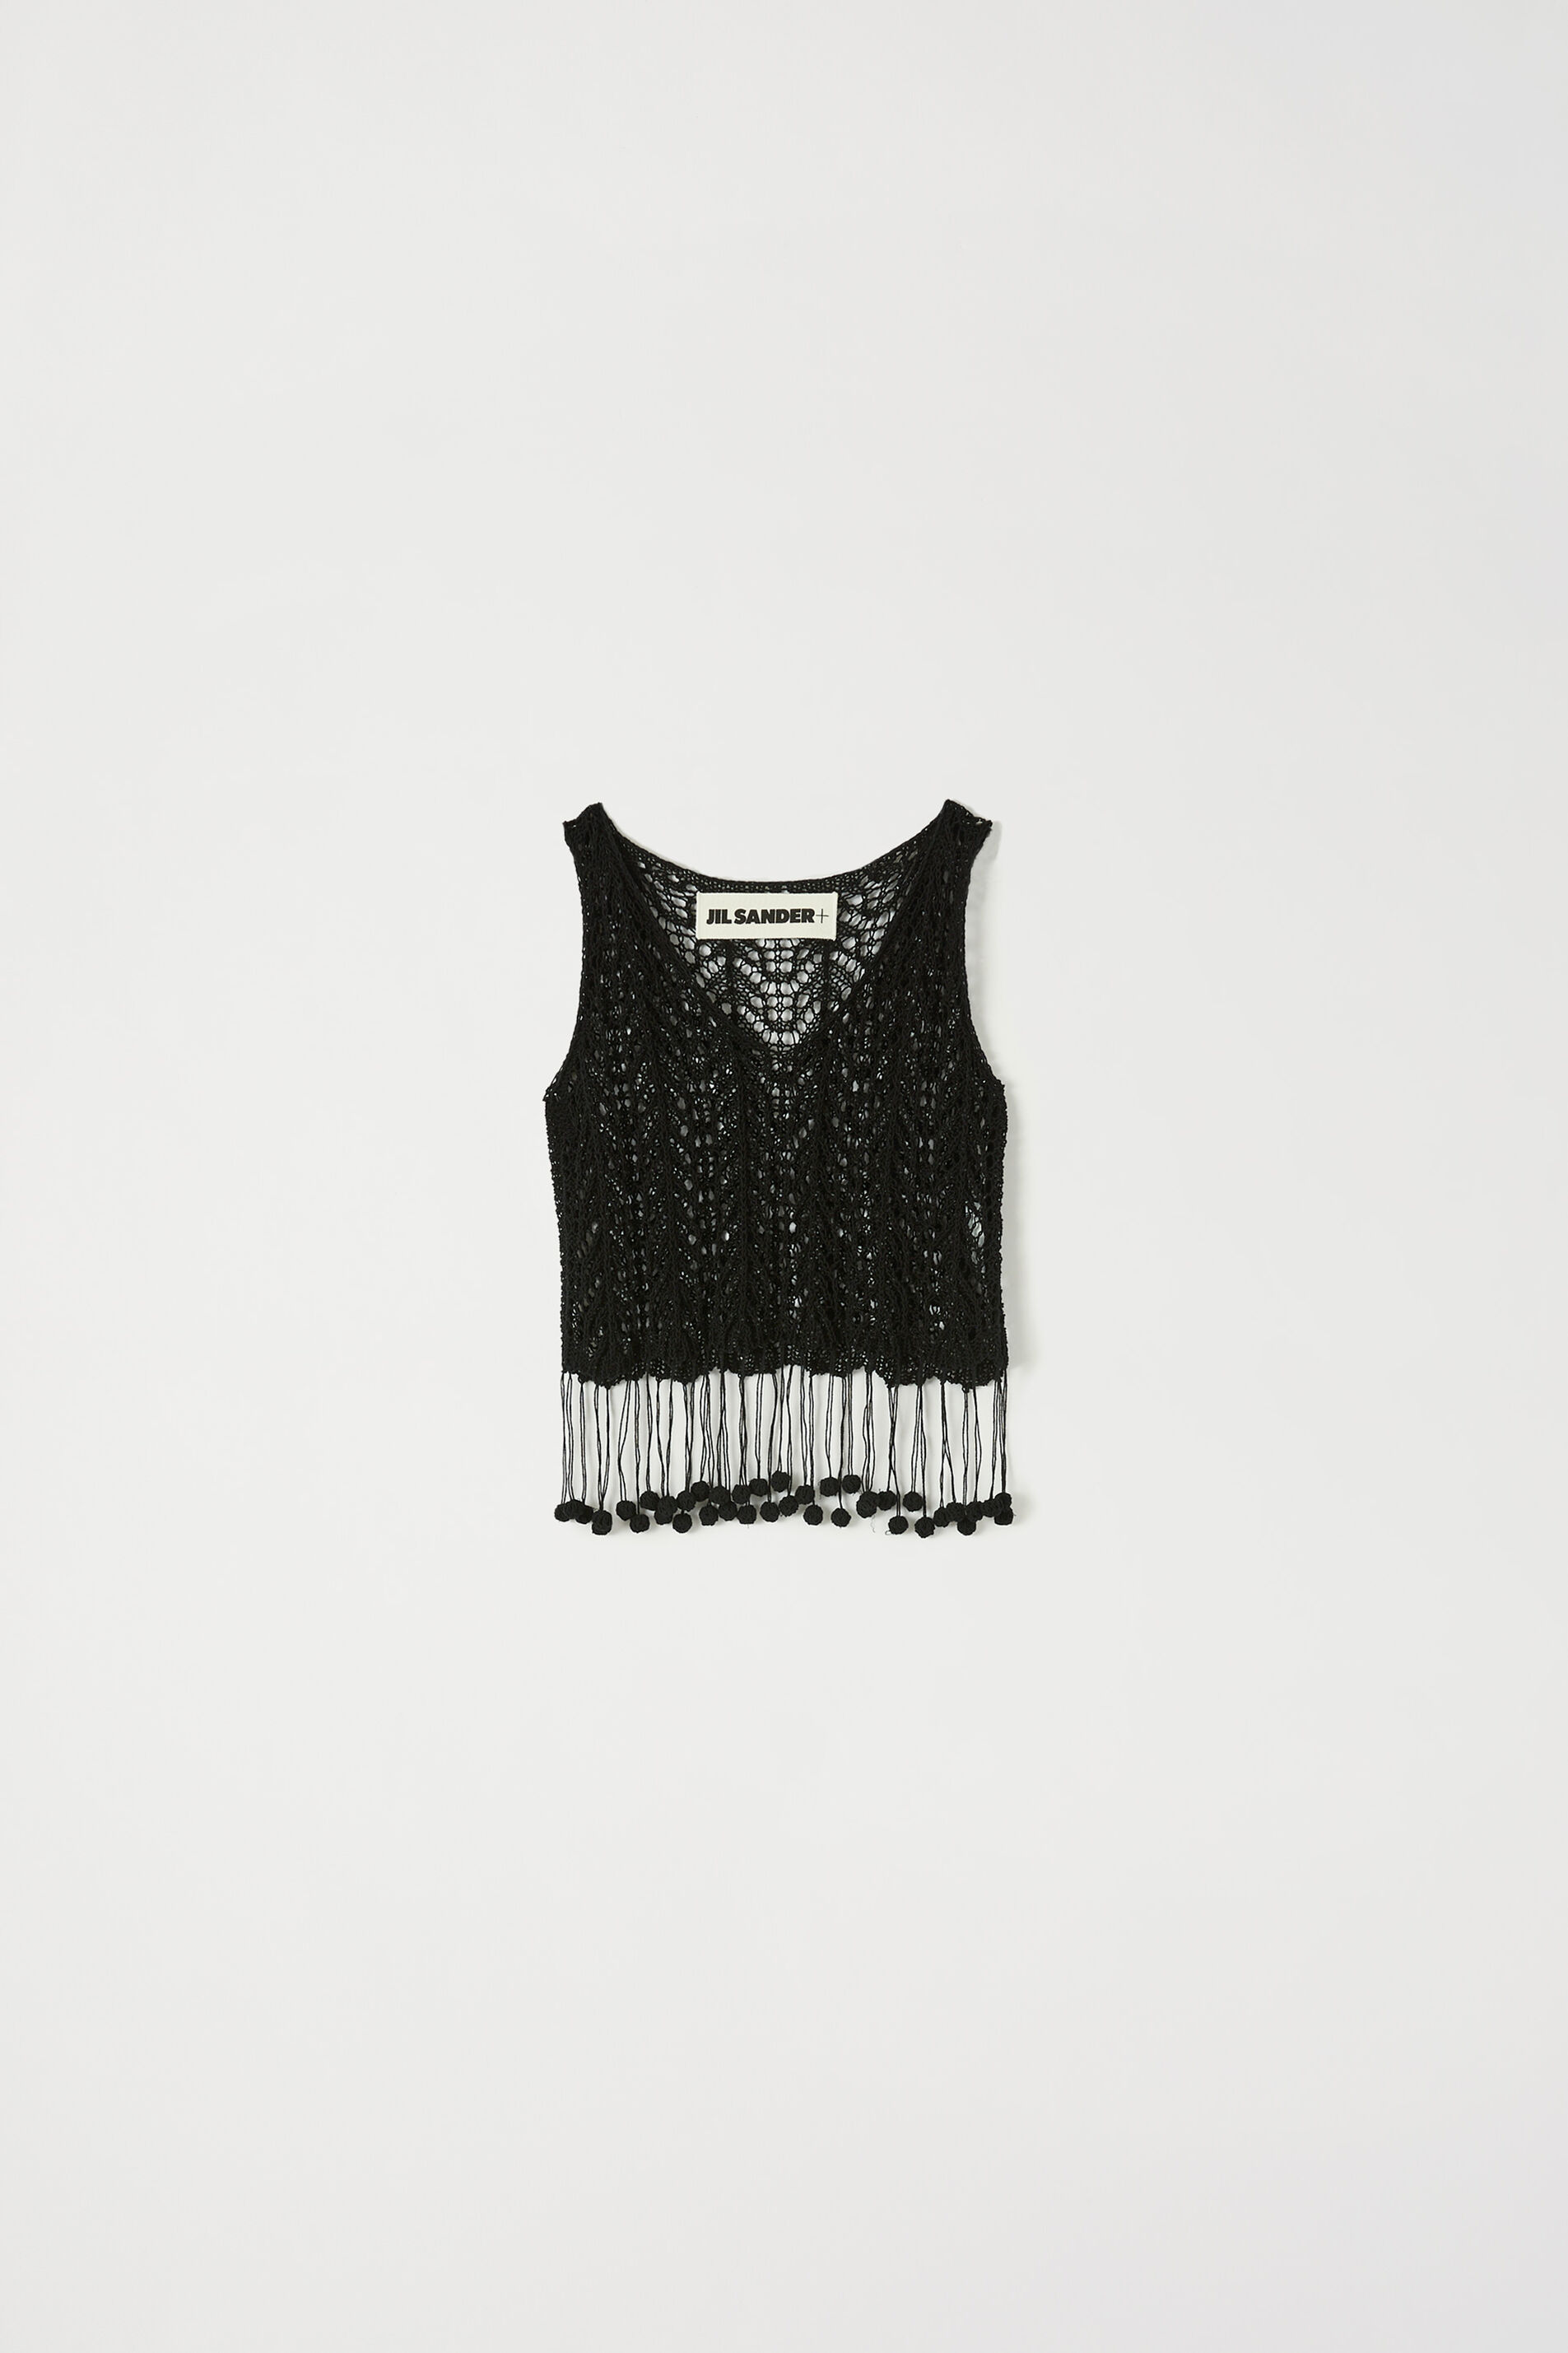 Crochet Top, black, large